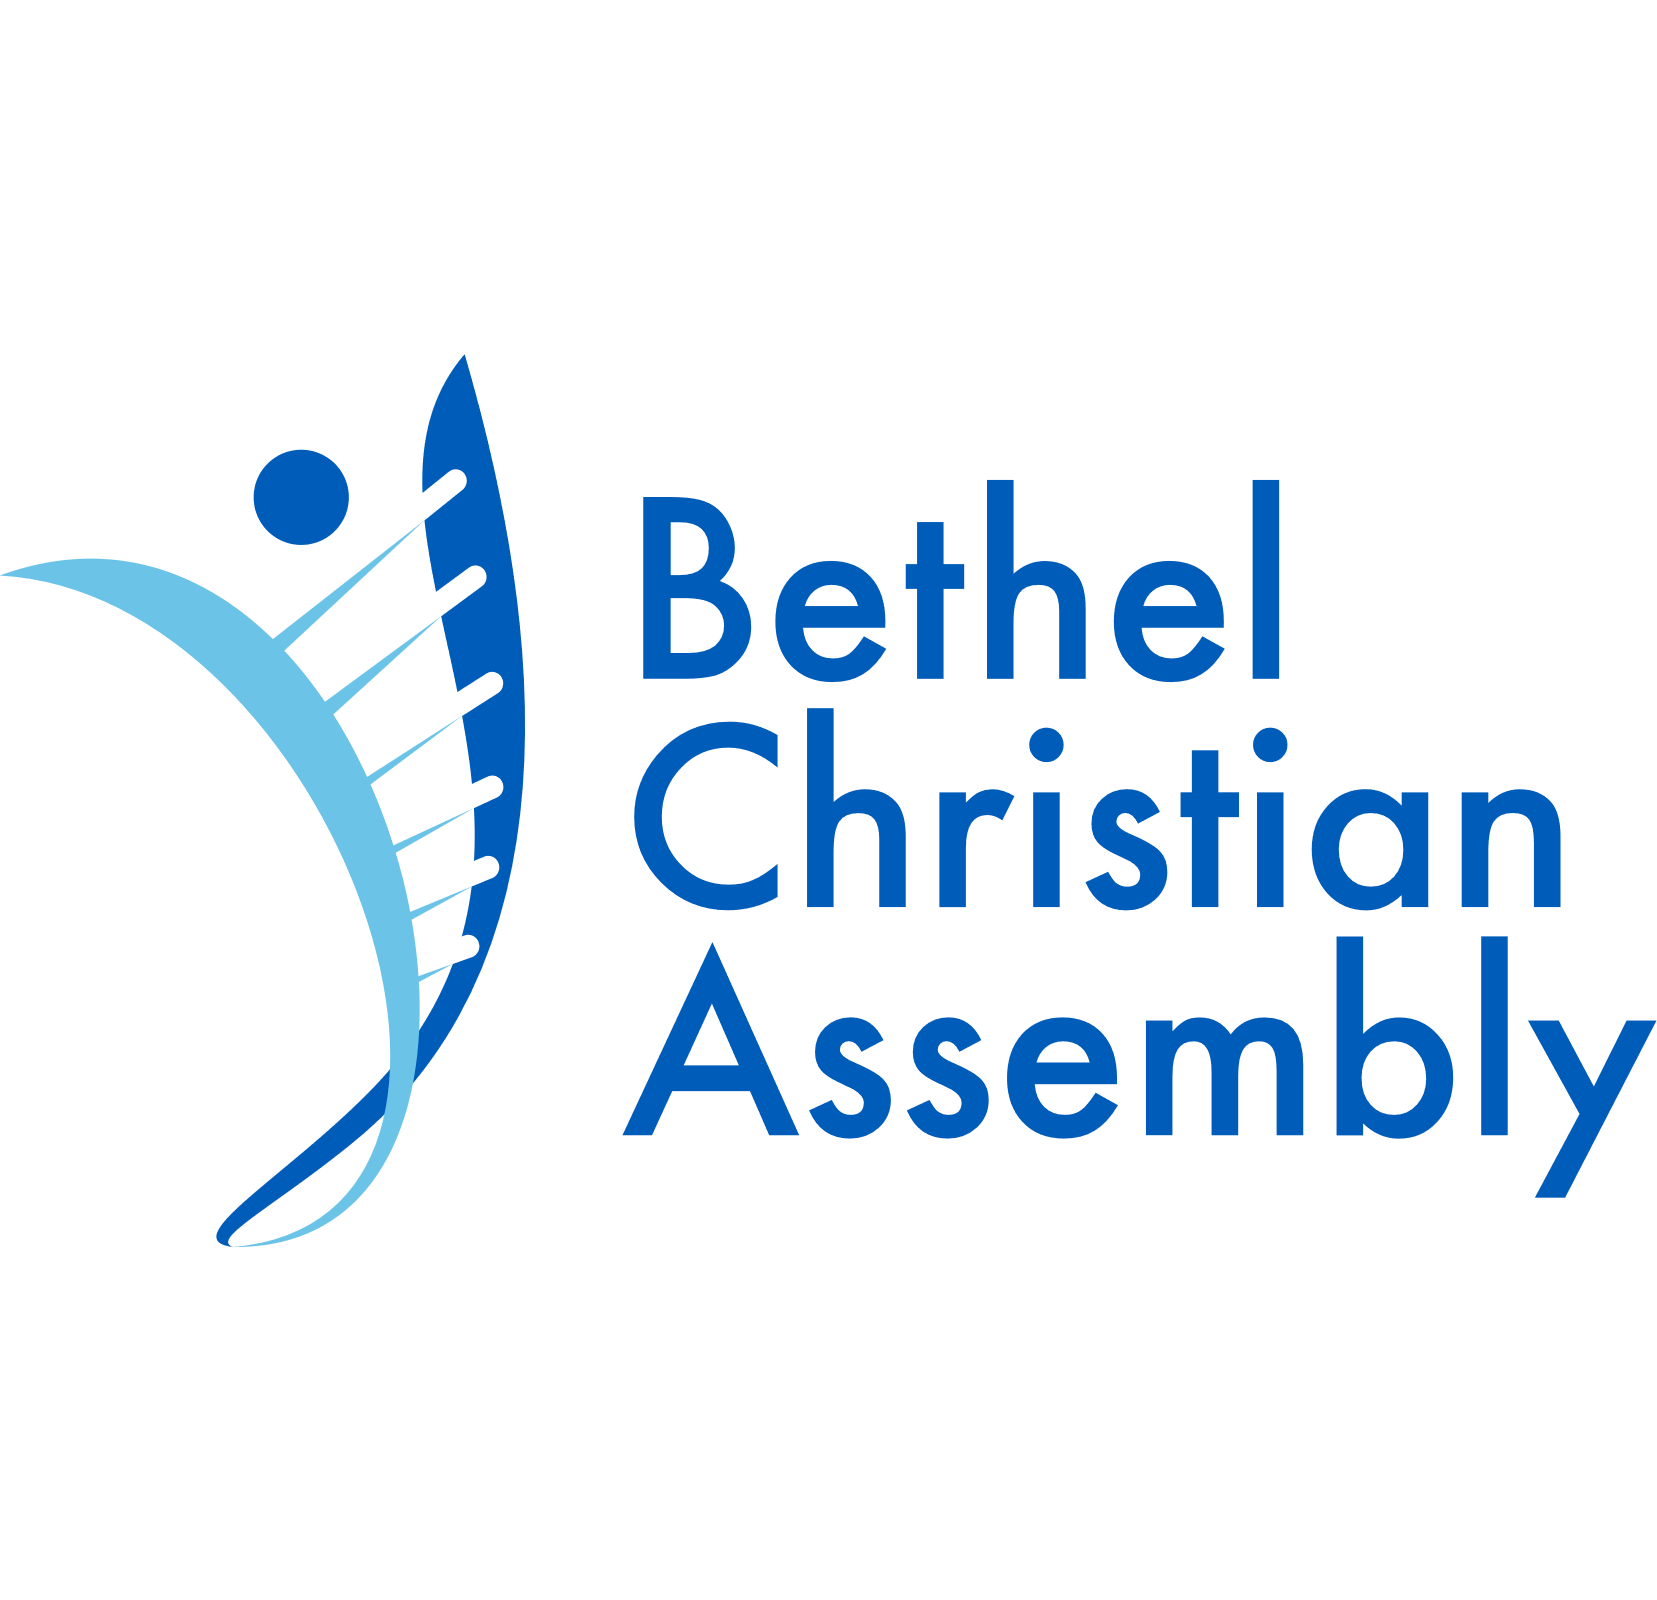 Bethel Christian Assembly